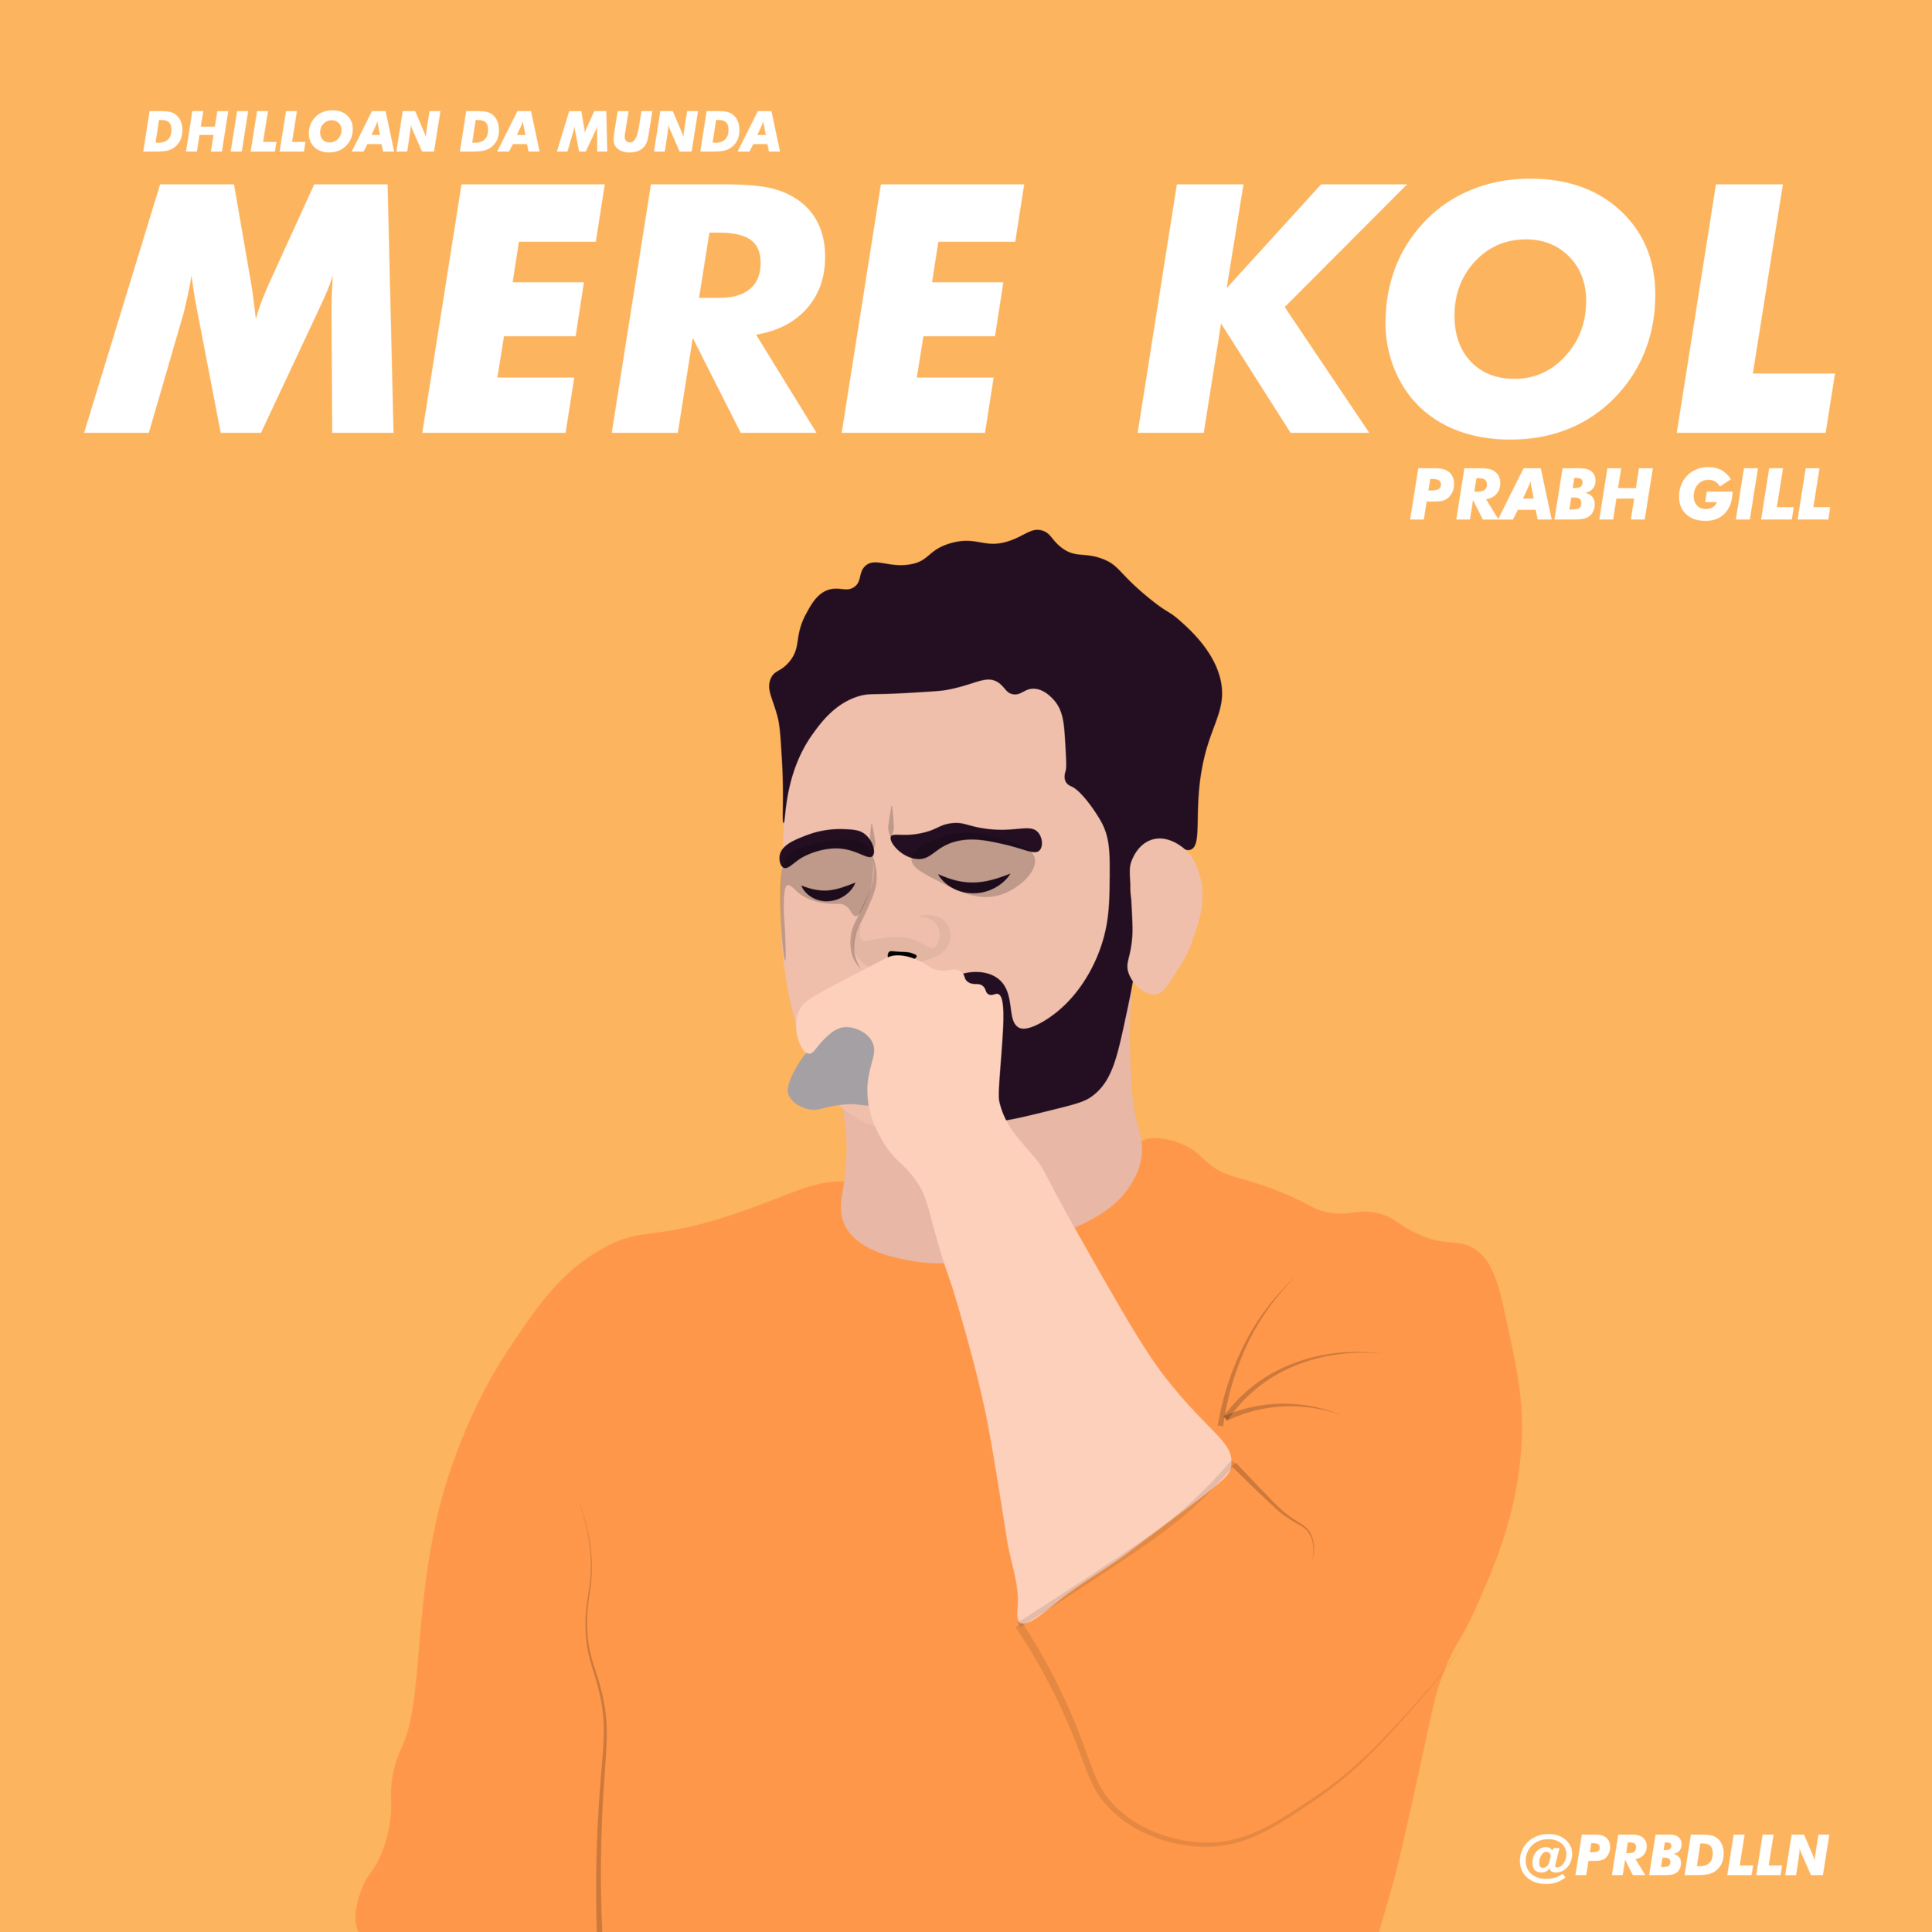 mere kol cover-01.png